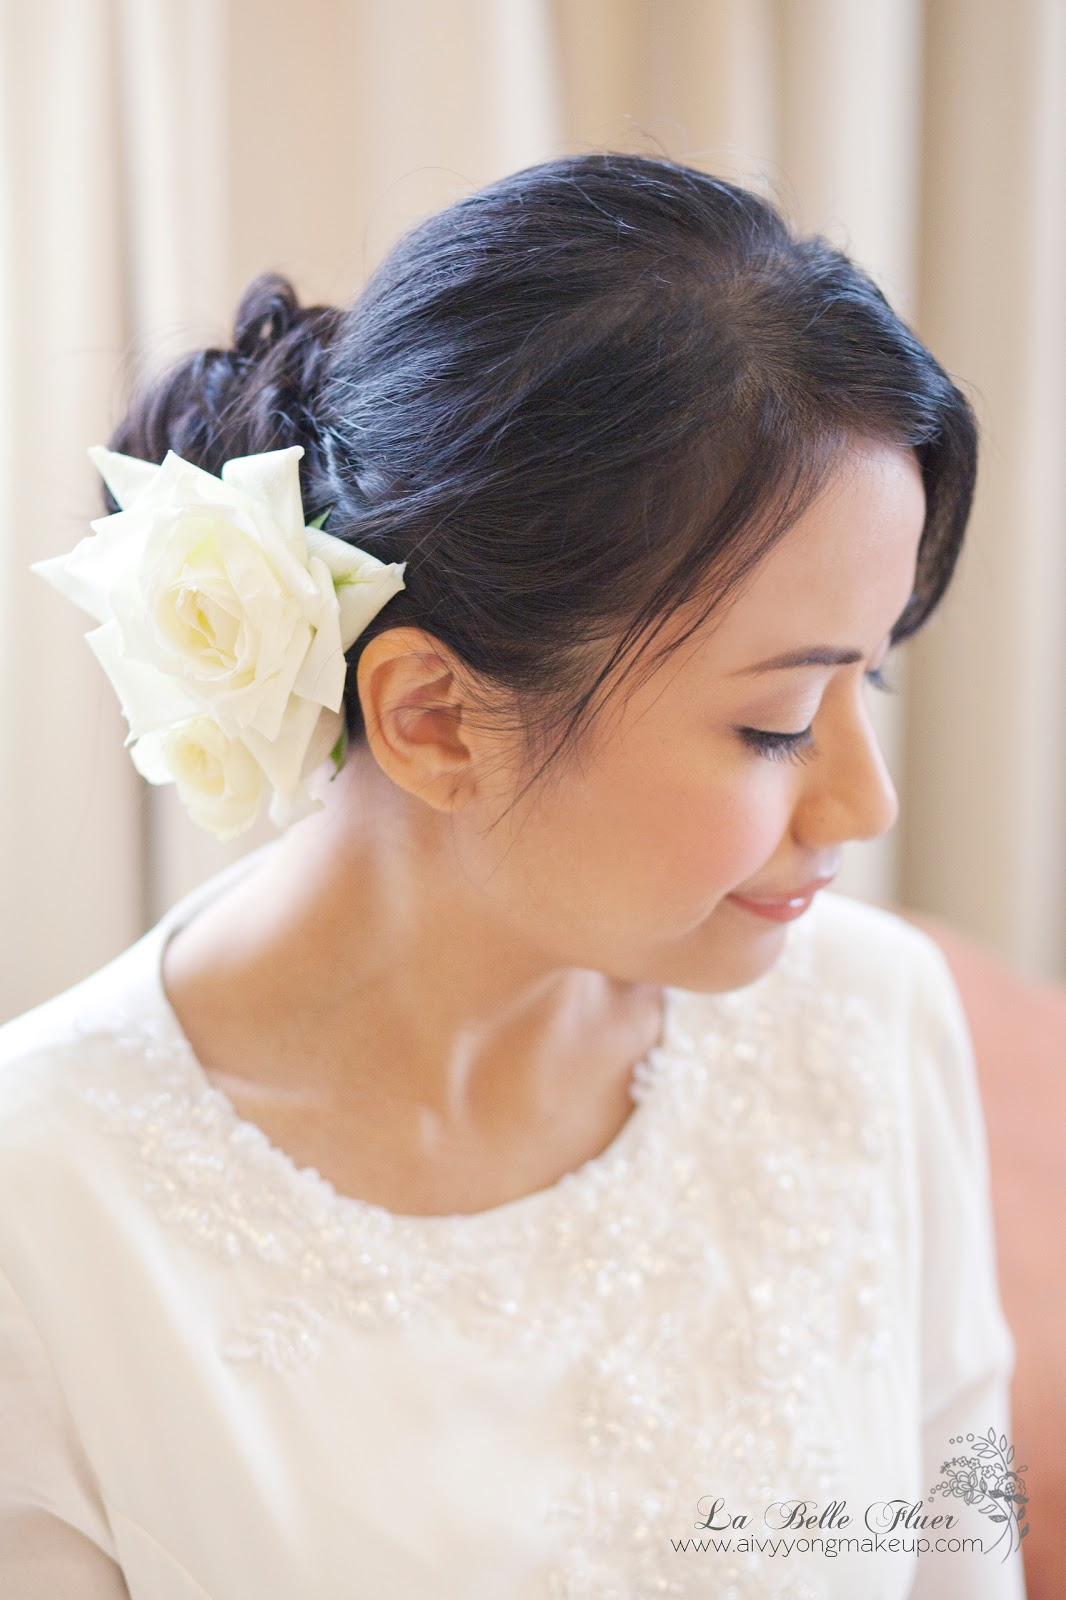 lovely bride-malay wedding ceremony | aivy yong air brush bridal